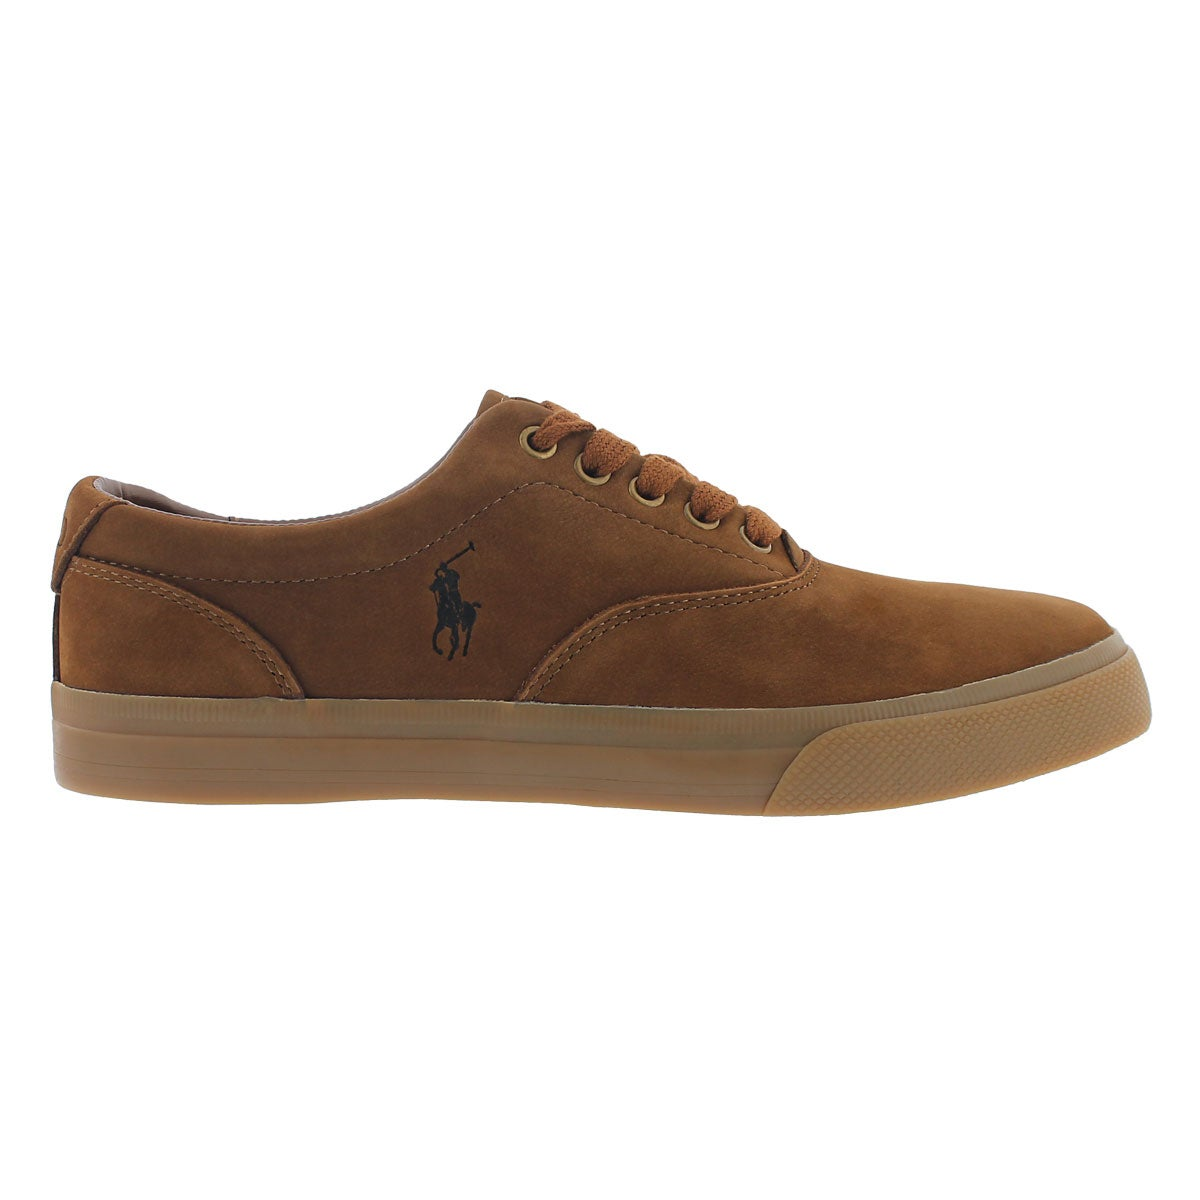 Mns Vaughn new snuff lace up sneaker